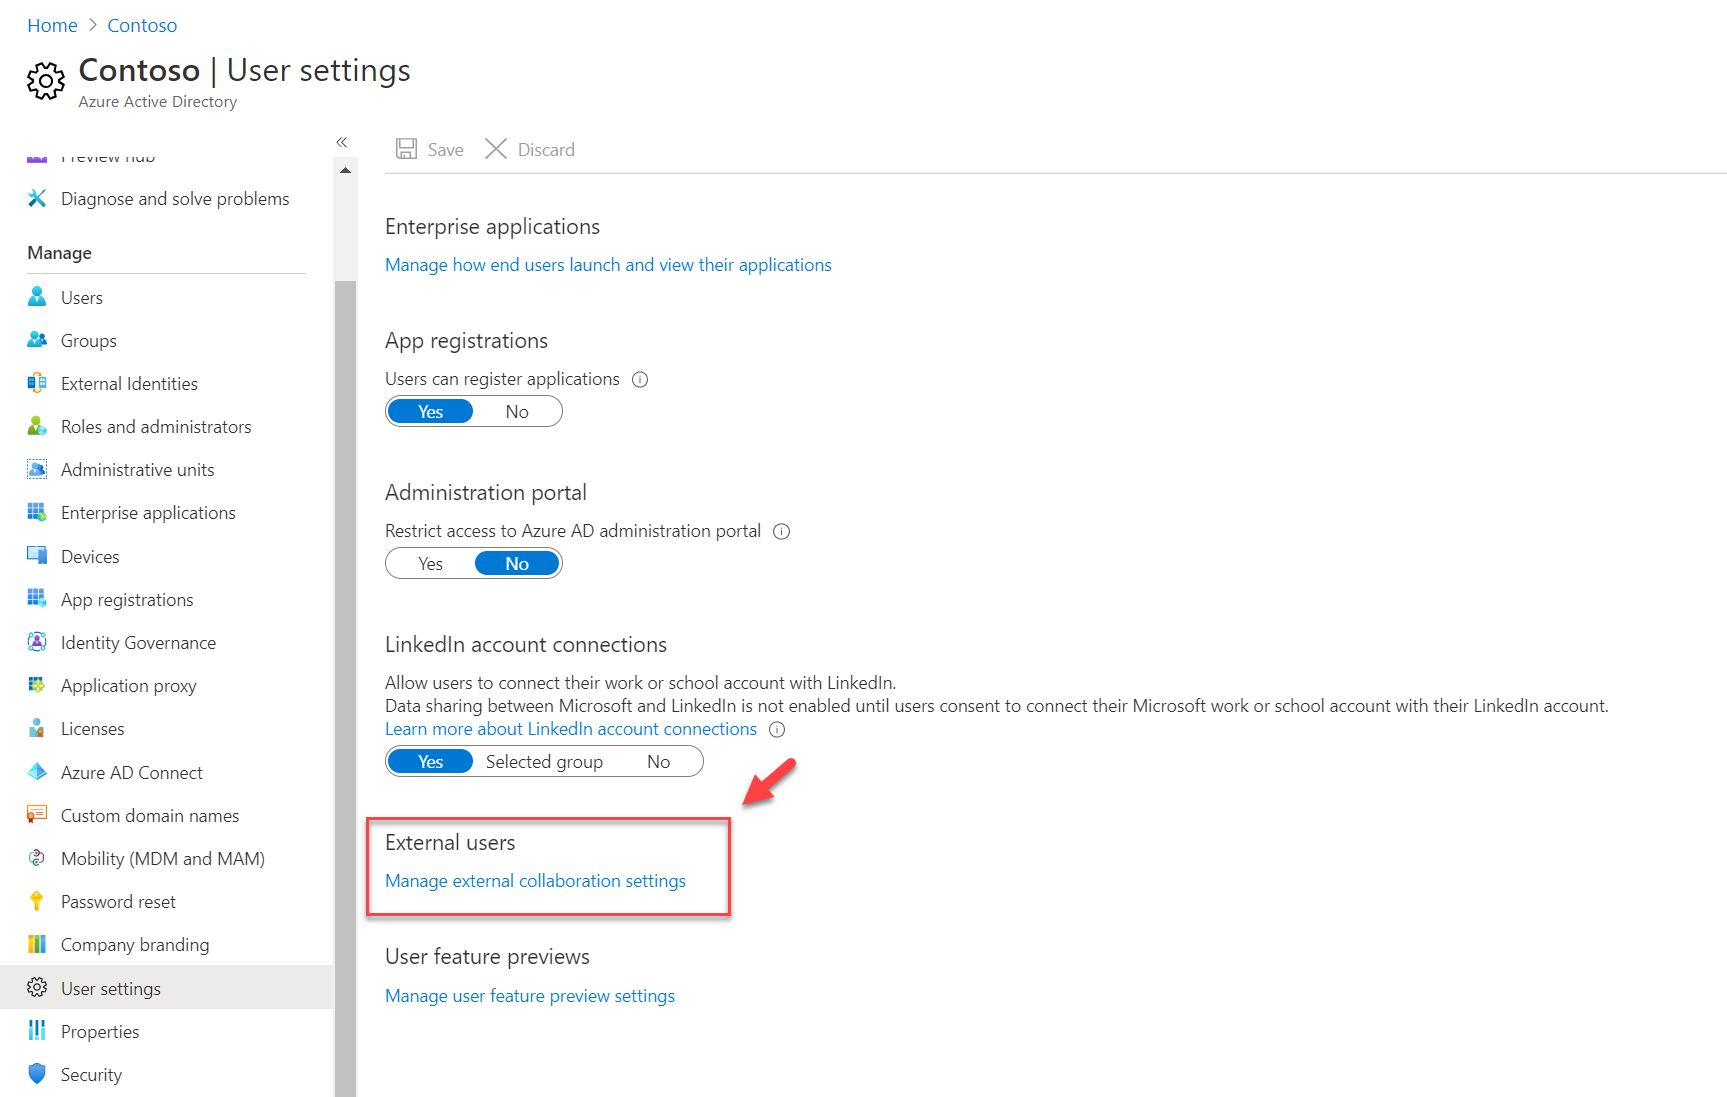 Manage external collaboration settings for External users